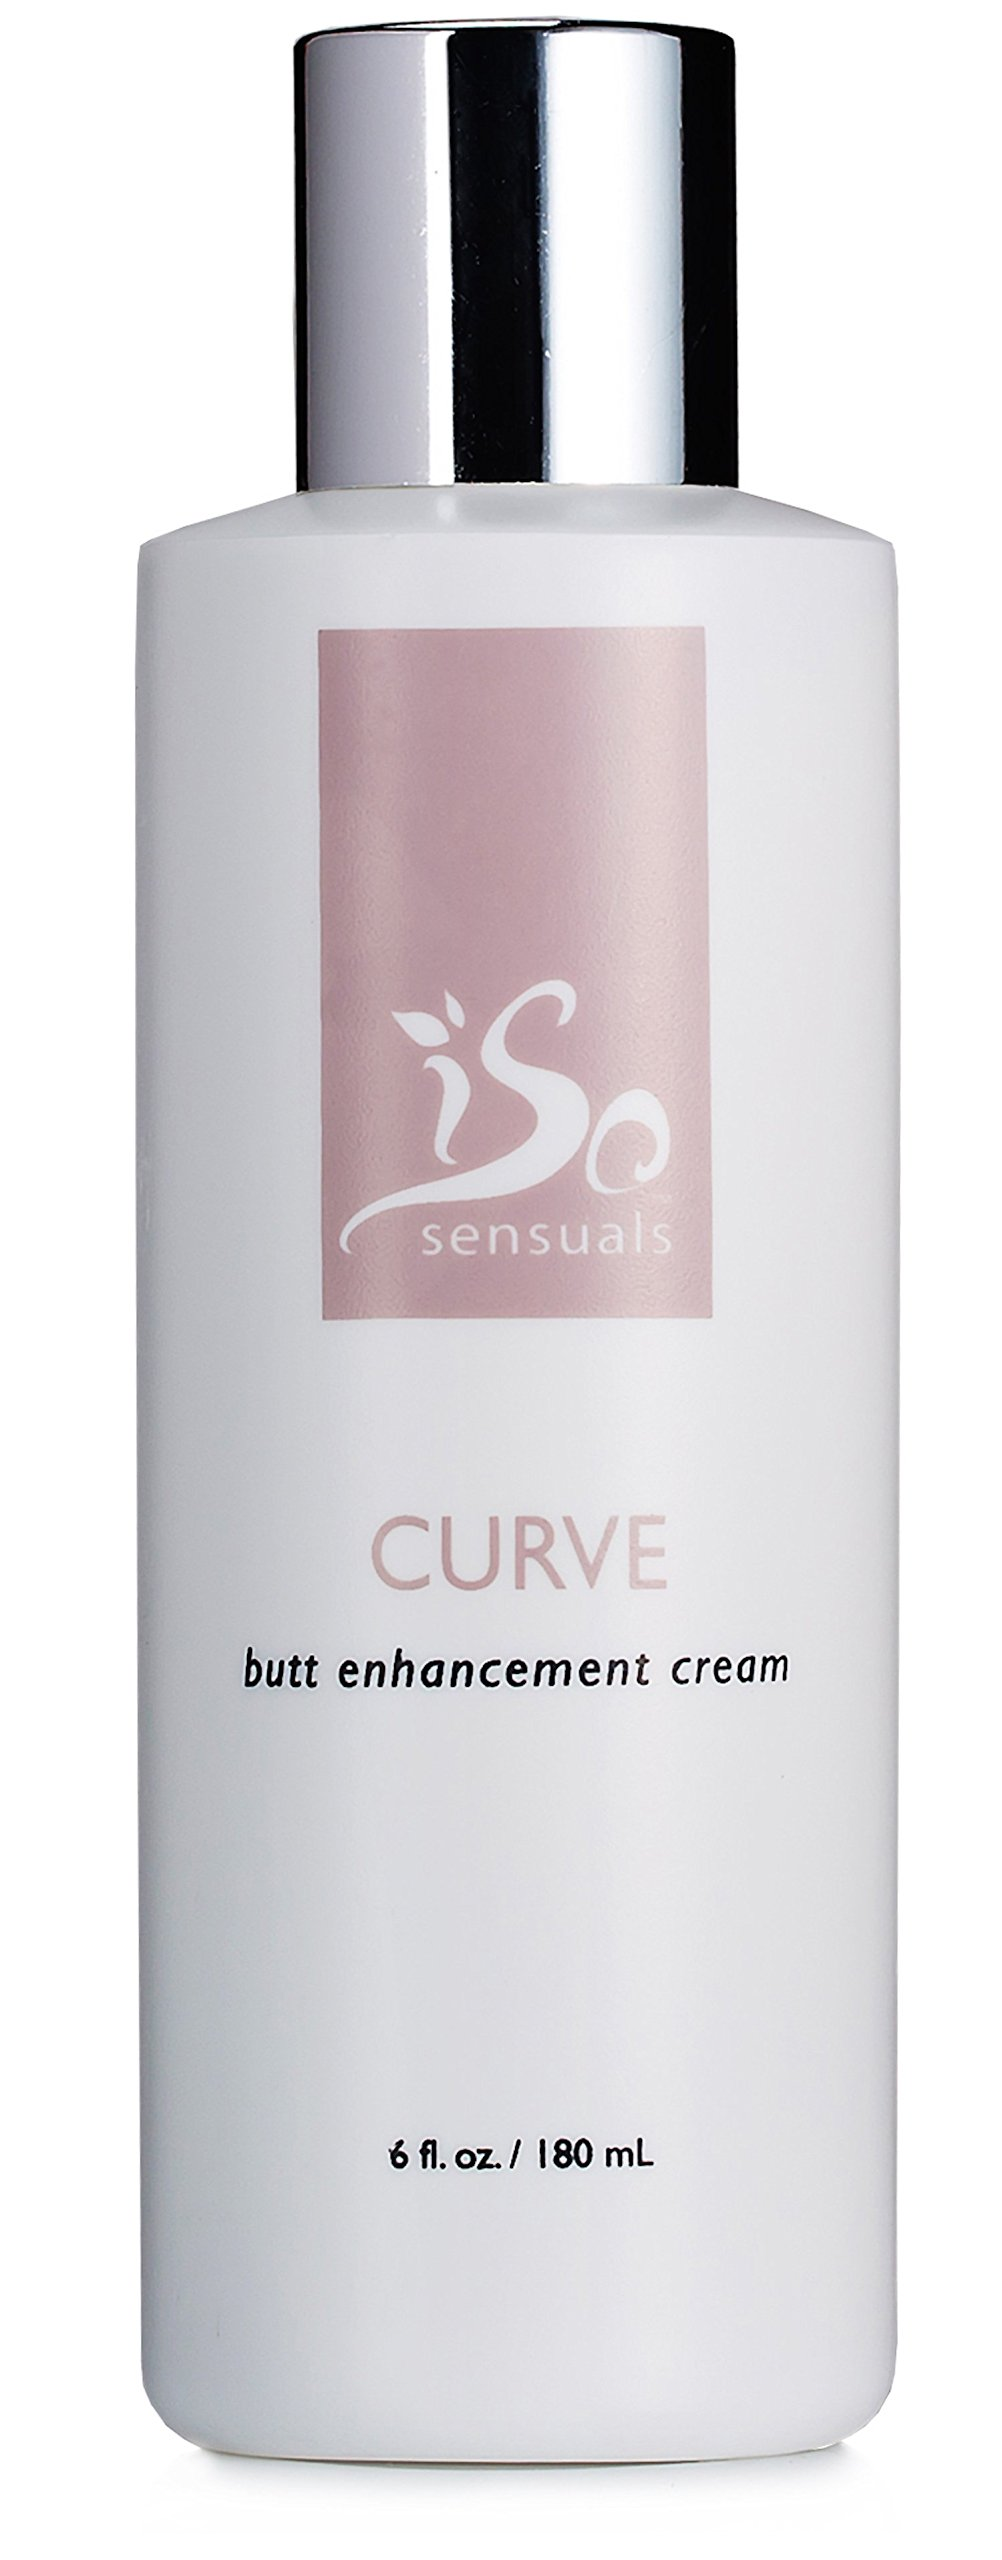 IsoSensuals CURVE | Butt Enhancement Cream - 1 Bottle | 2 Month Supply by IsoSensuals (Image #2)